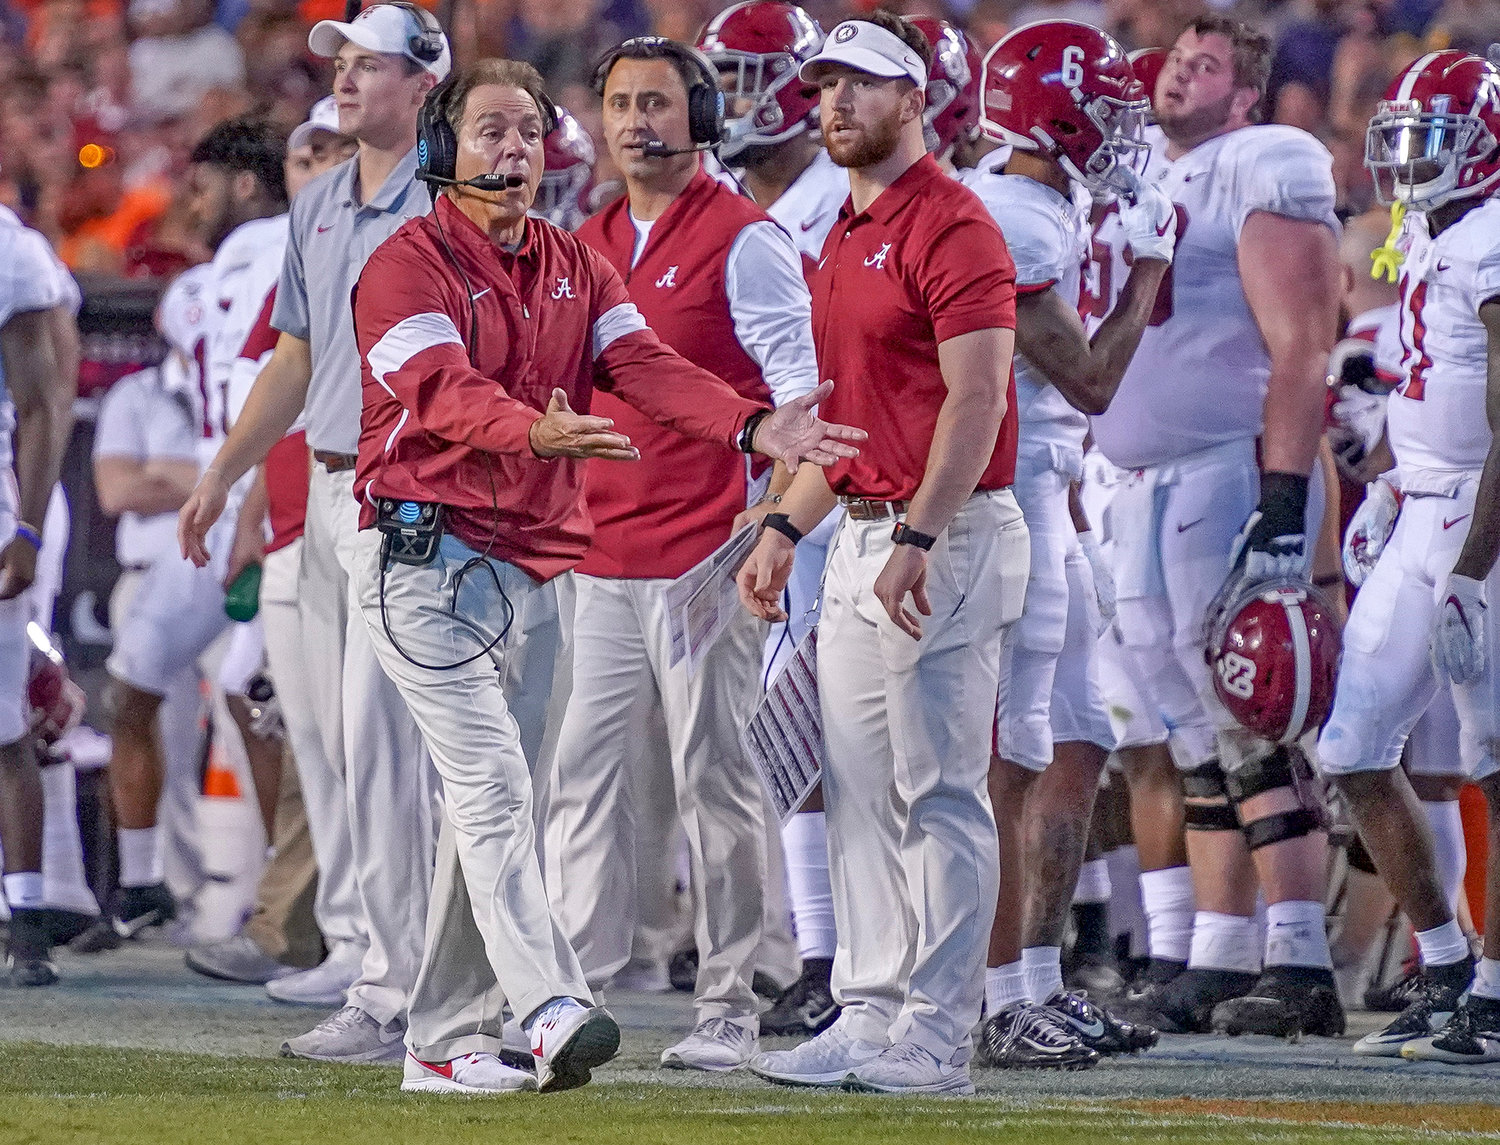 Alabama head coach Nick Saban disagrees with a call in the second half of Saturday's Iron Bowl in Auburn, Ala. The host Tigers upset the Tide, knocking them out of the AP Top 5 for the first time in 68 polls.